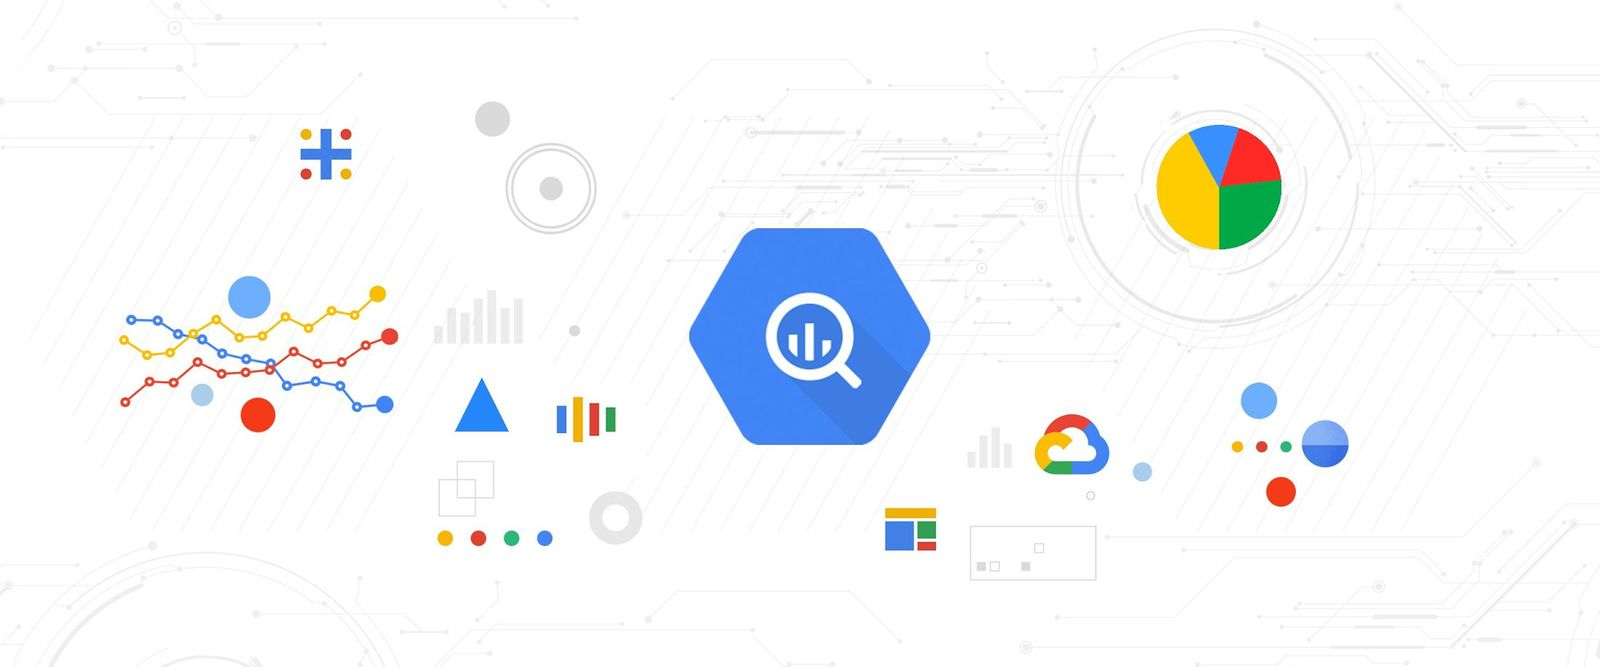 Fibonacci series with user-defined functions in BigQuery